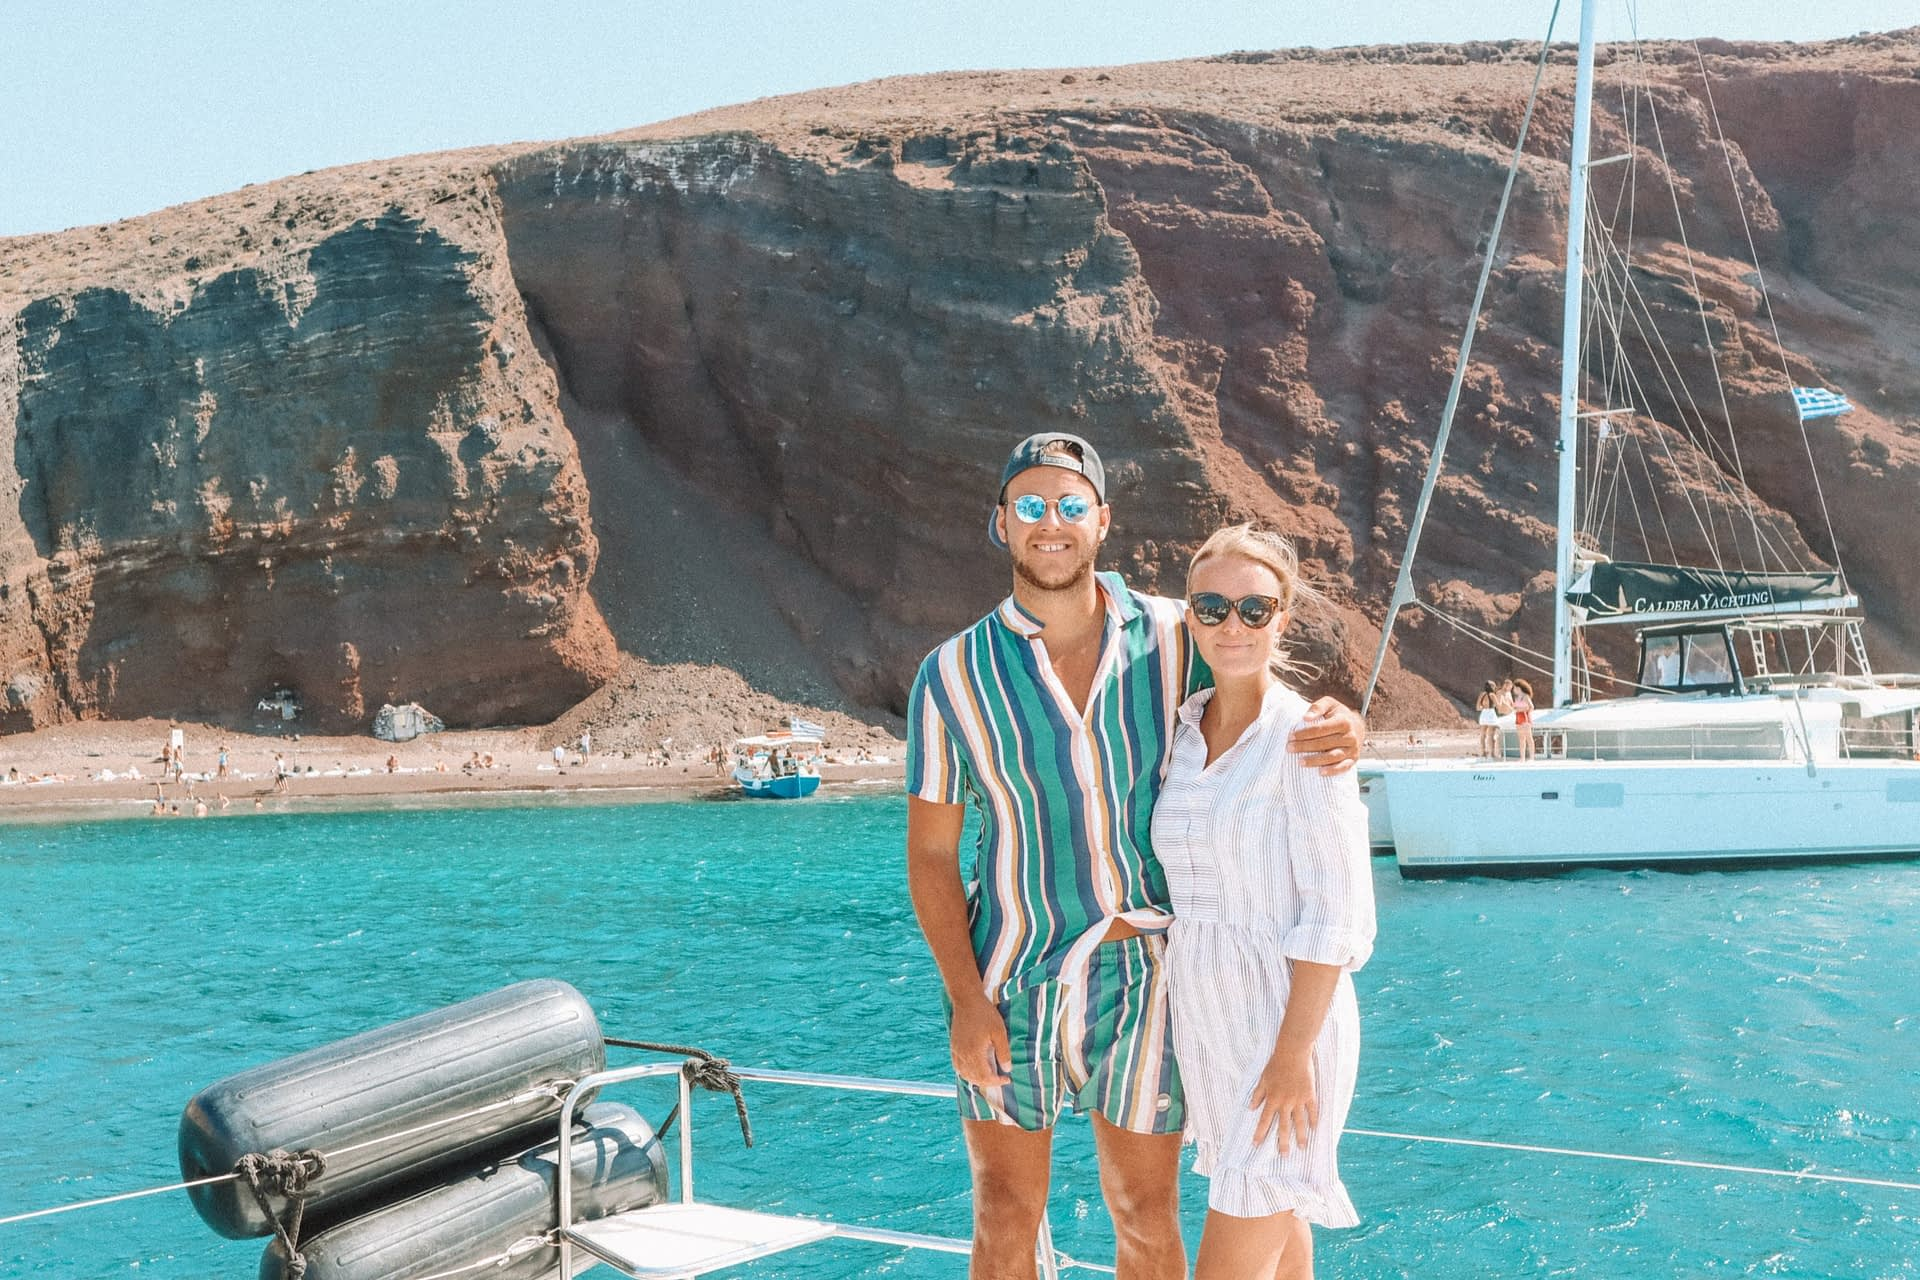 A couple stood on a boat with turquoise water and the red beach in the background. Things to do in Santorini